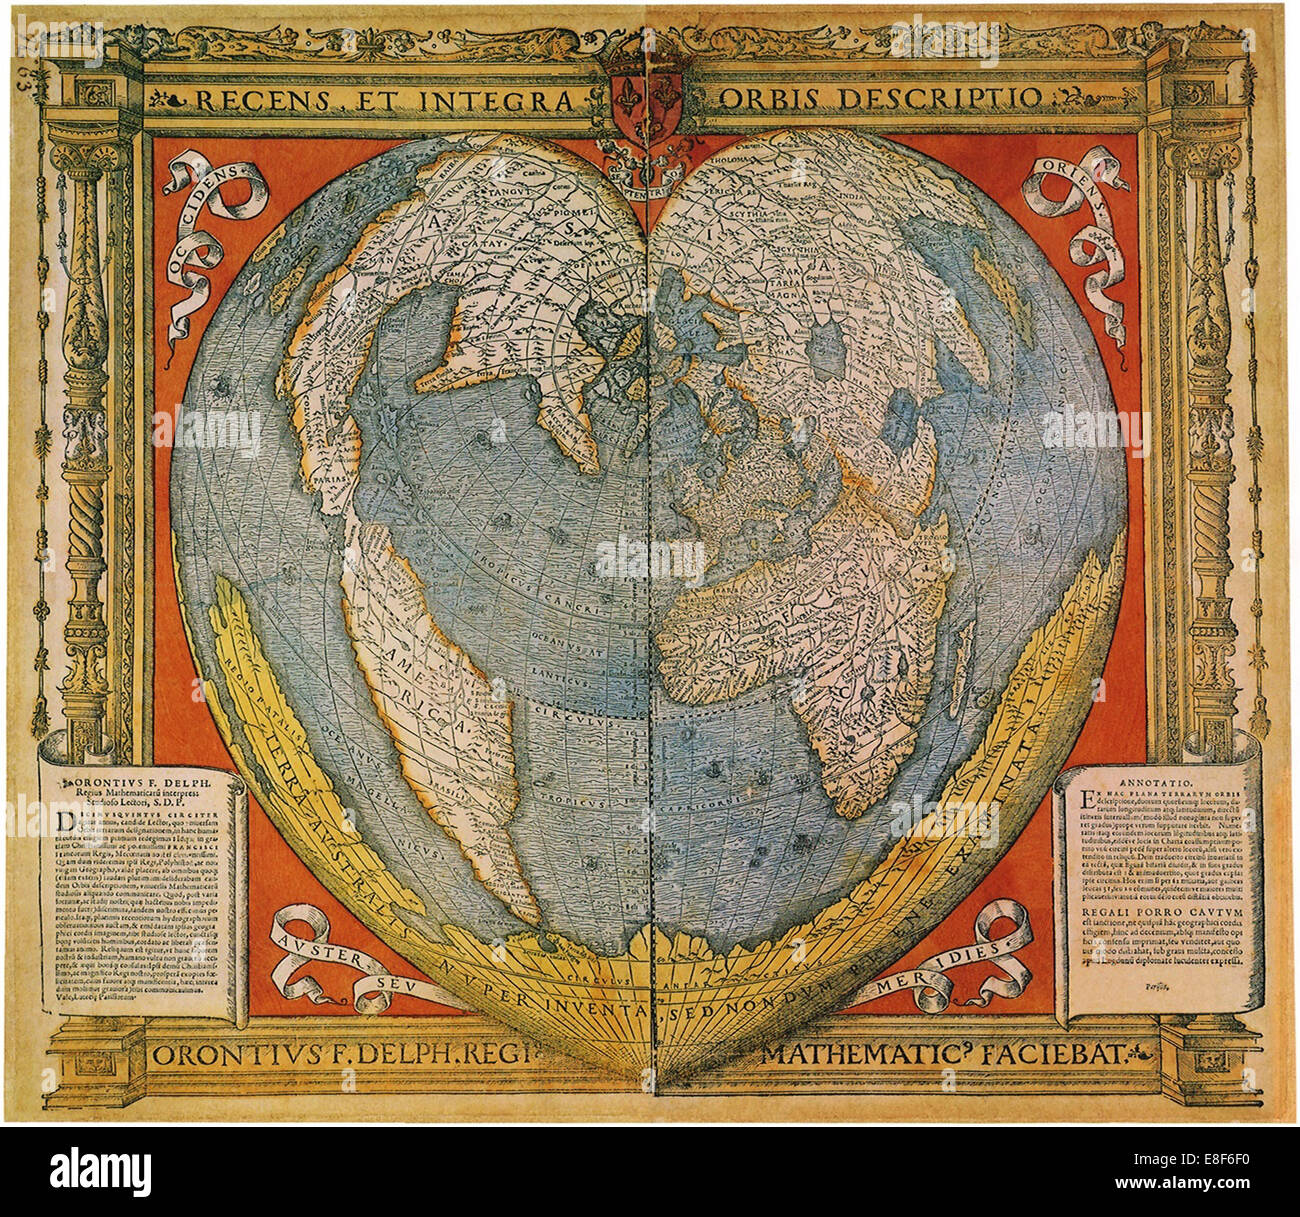 Heart Shaped World Map. Artist: Fine, Oronce (1494-1555) - Stock Image